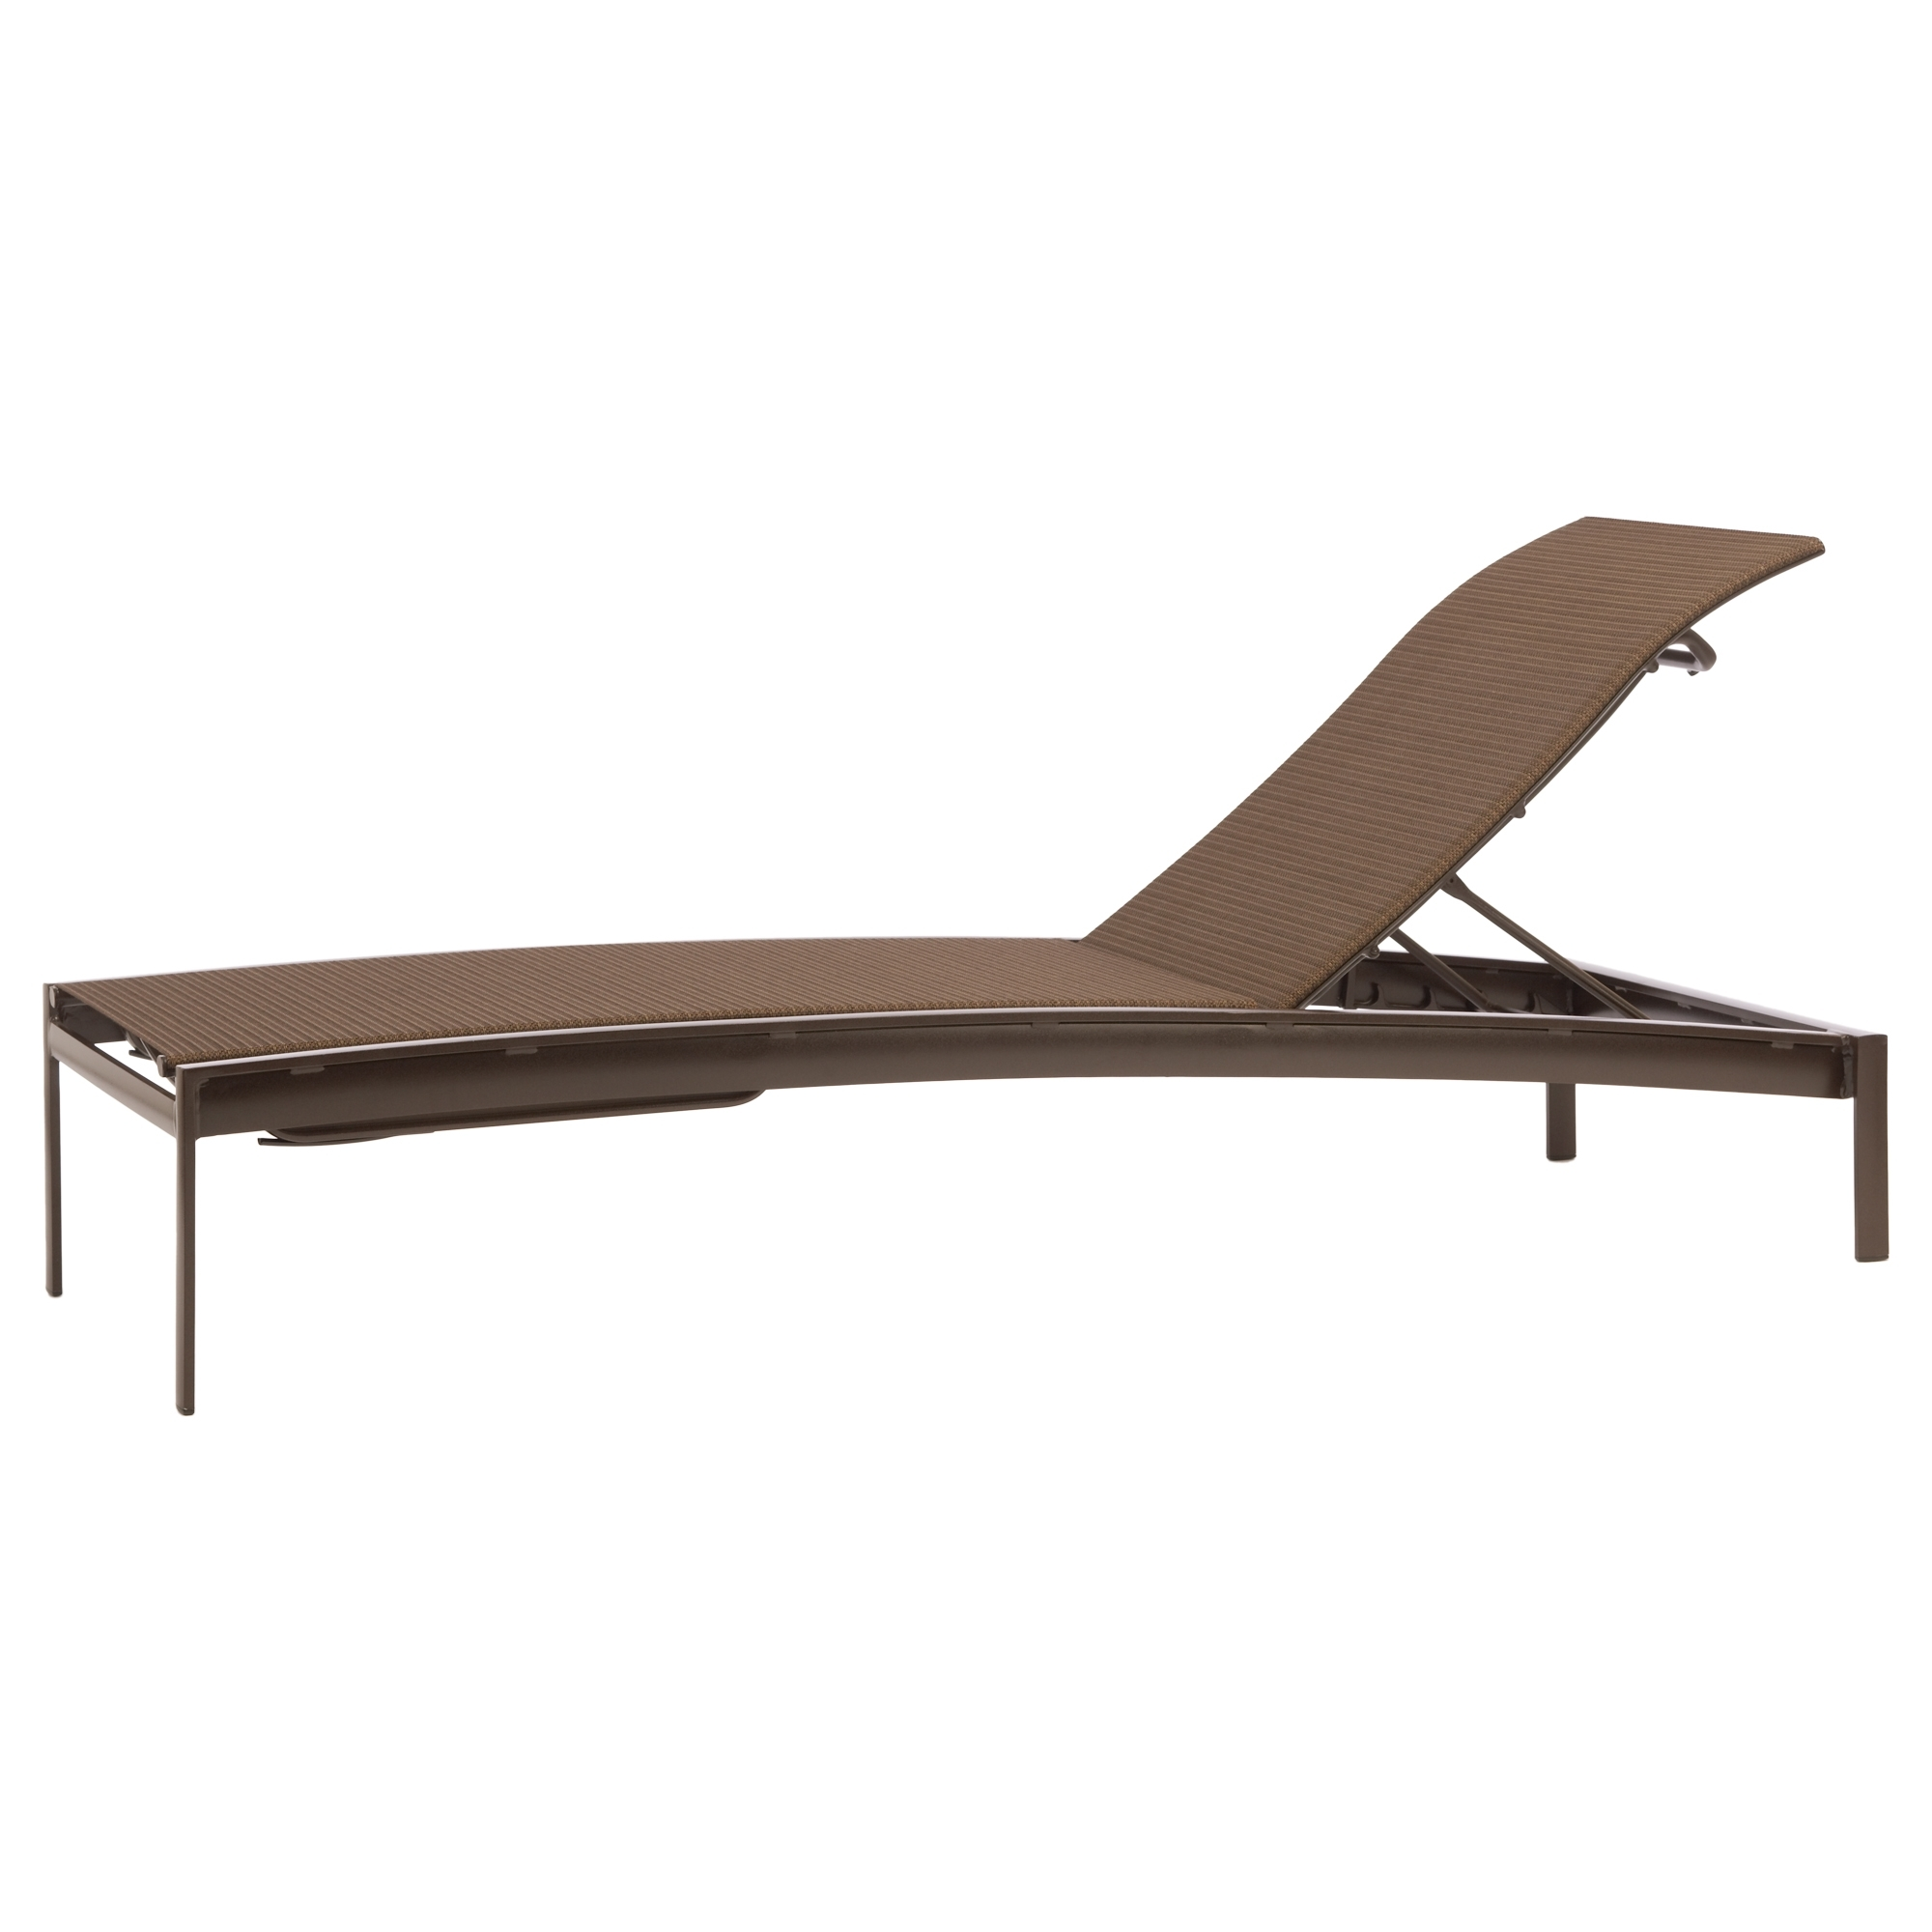 Brown Jordan Contract With Regard To Favorite Brown Jordan Chaise Lounge Chairs (View 5 of 15)